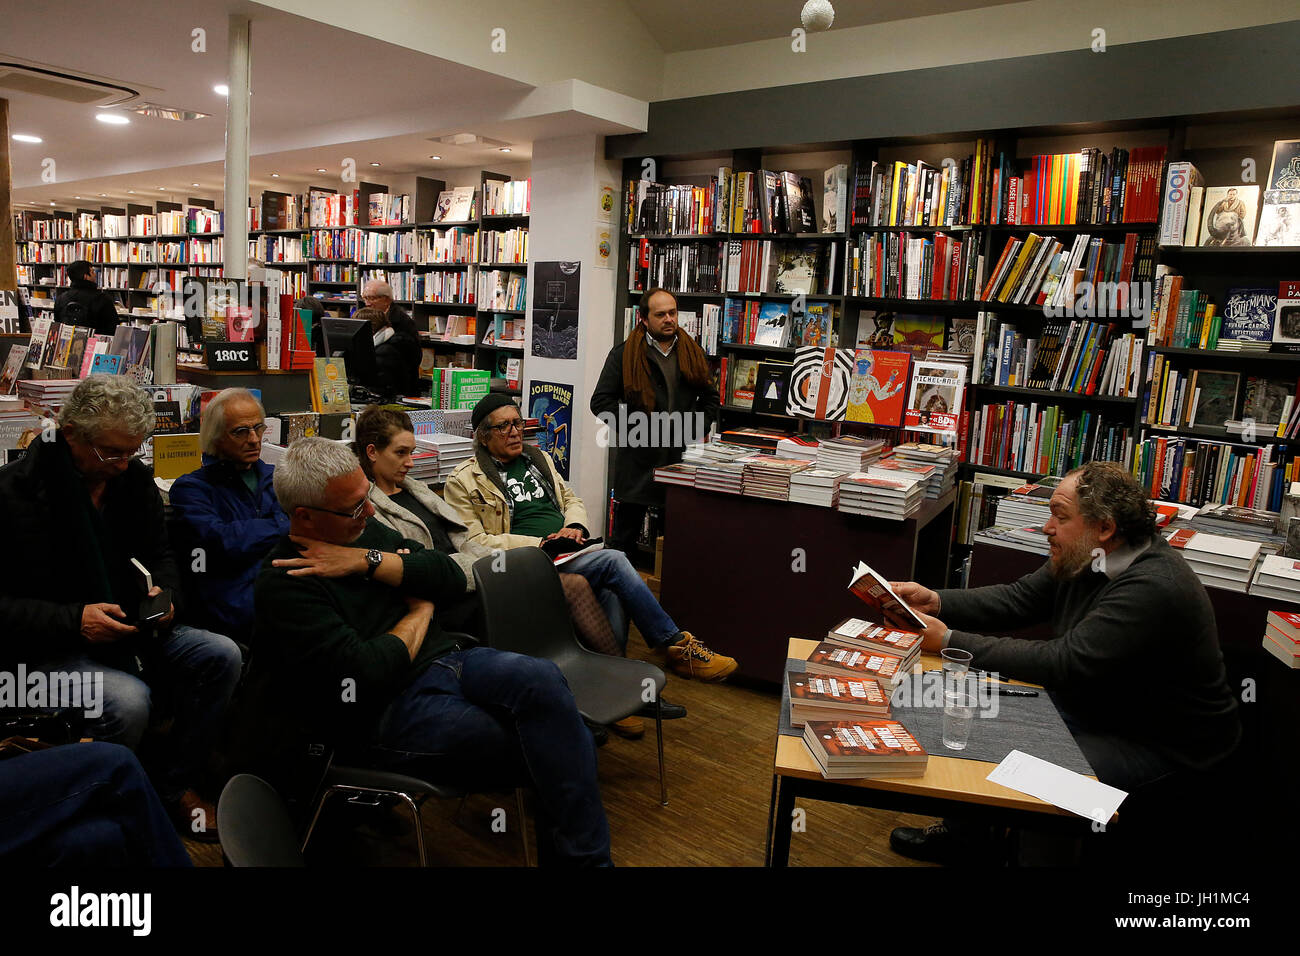 French writer Mathias Enard reading one of his books in a bookshop. France. - Stock Image